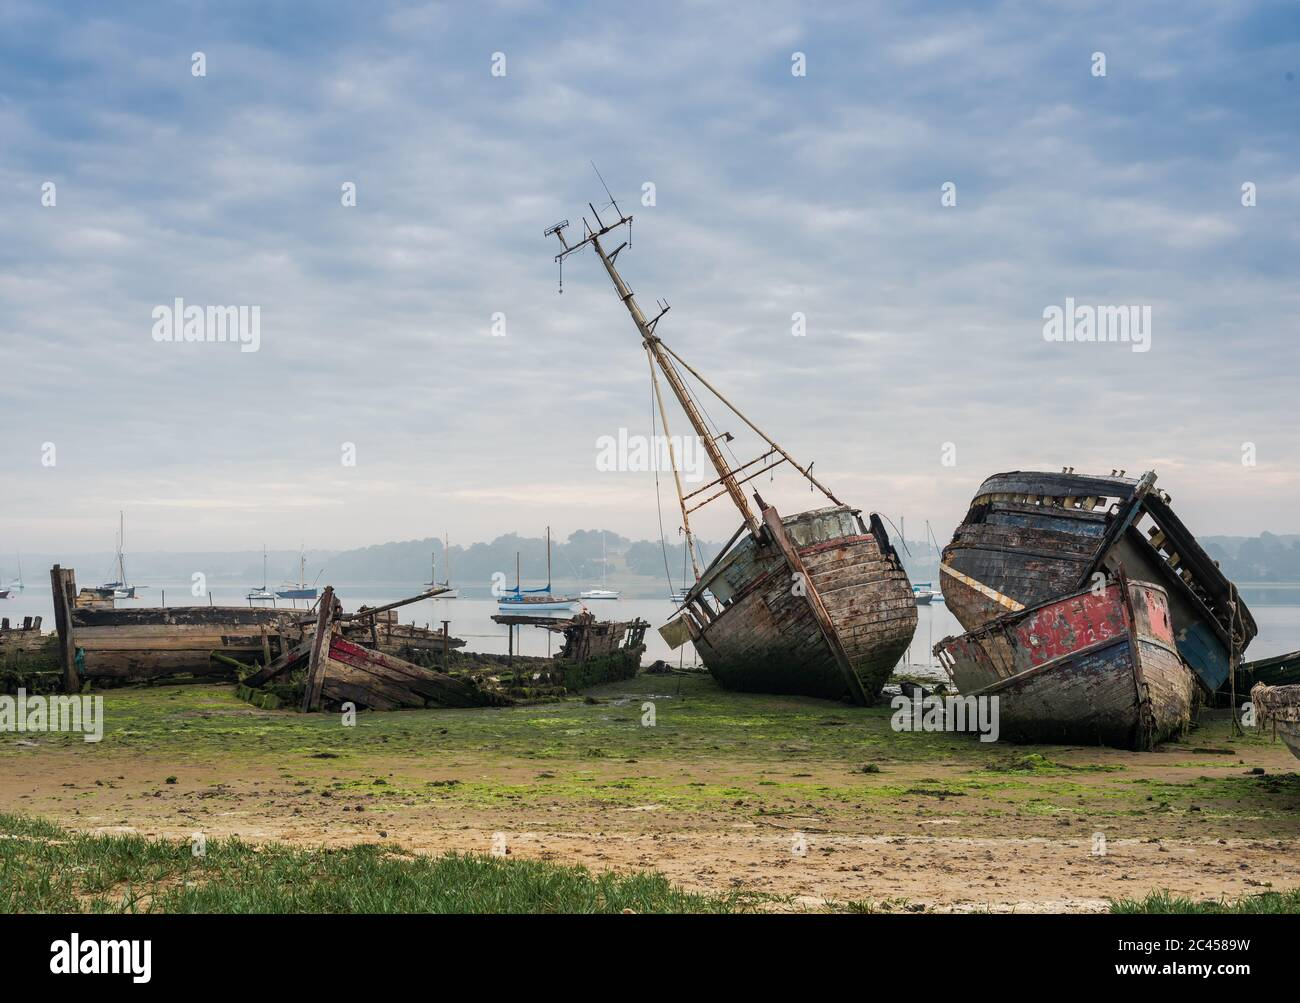 Views of boat wrecks at Pin Mill on the River Orwell just outside Ipswich, Suffolk, UK. Famous for its boat wrecks and great for photographers. Stock Photo